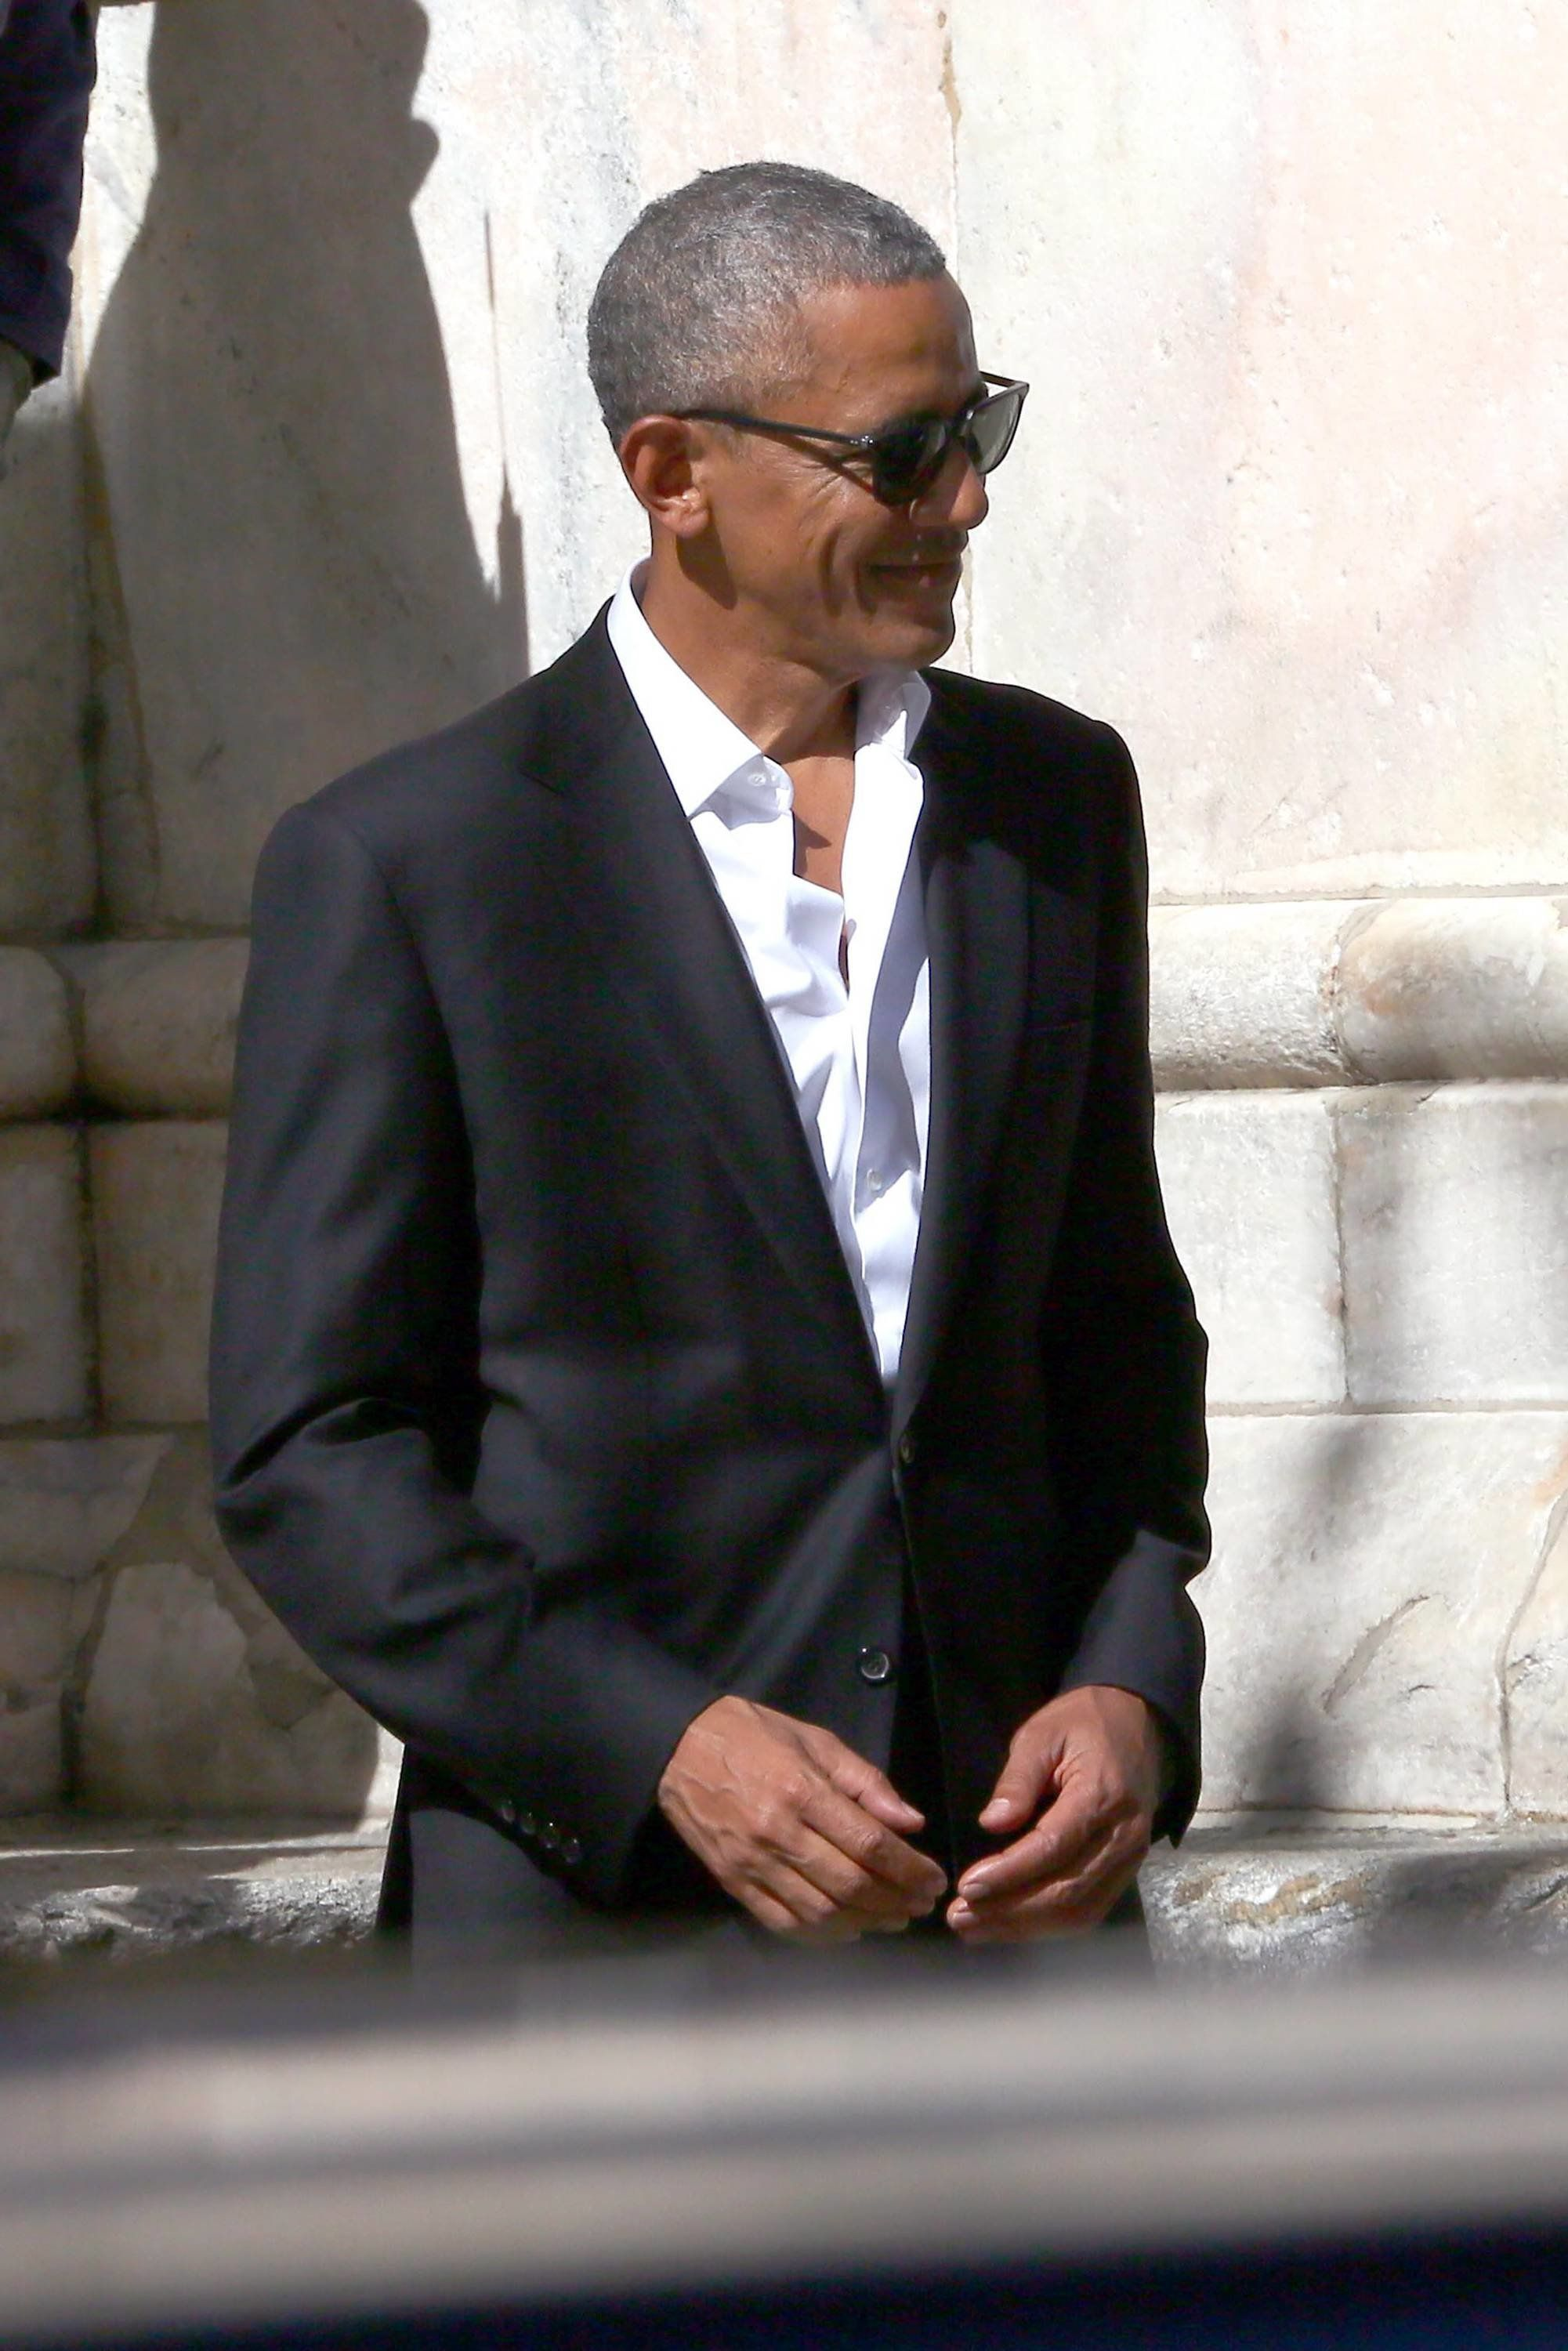 Barack Obama spotted on a visit to Milan, Italy. The former U.S. President went to the a cathedral and the Biblioteca Ambrosiana on his trip. 